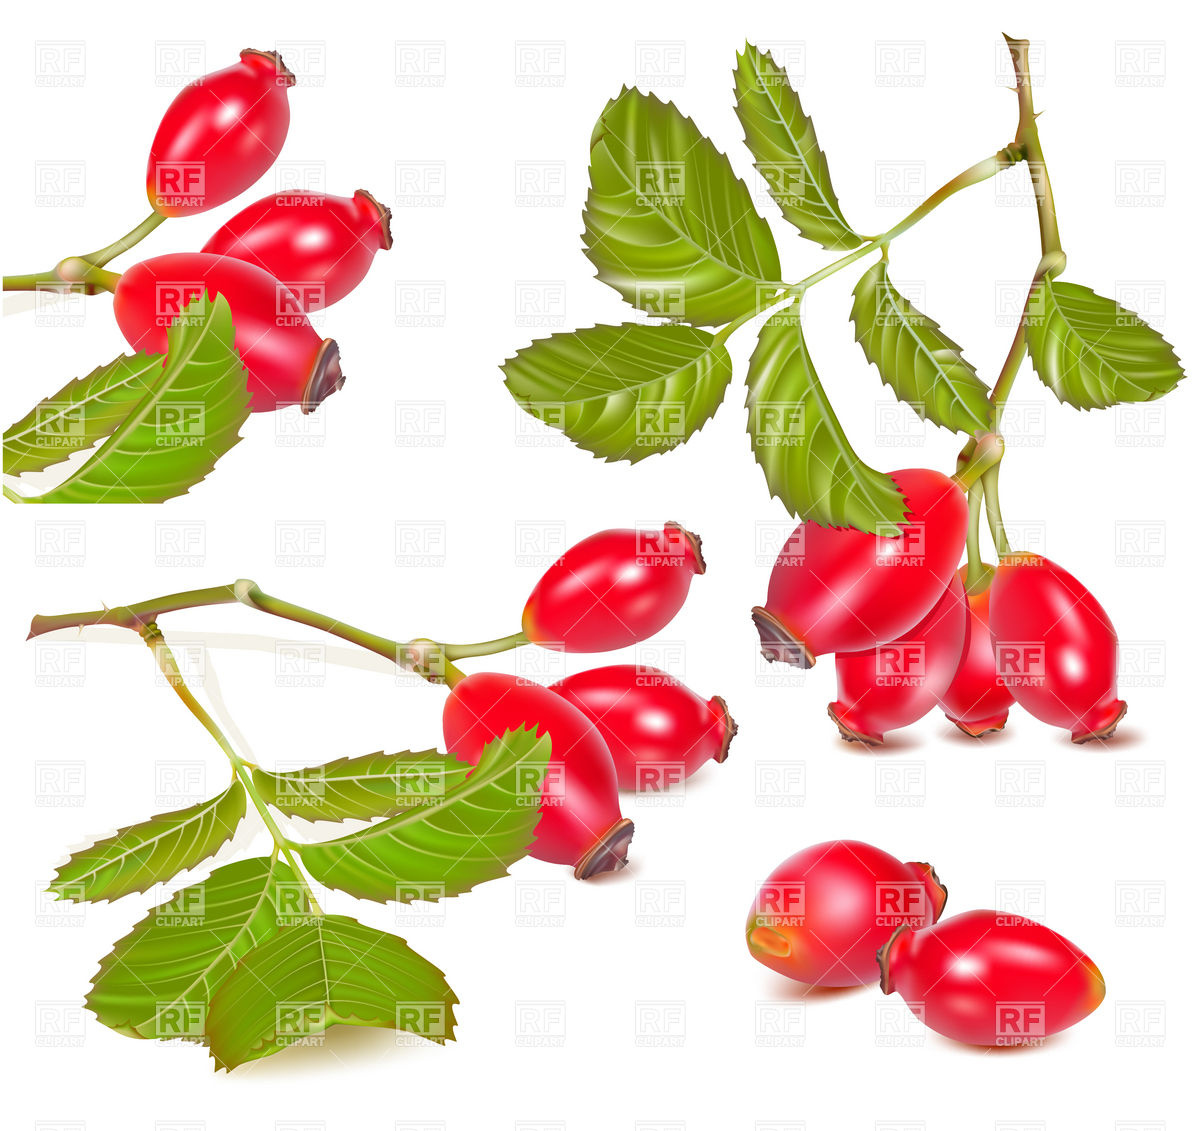 Red rose hips Vector Image #5040.